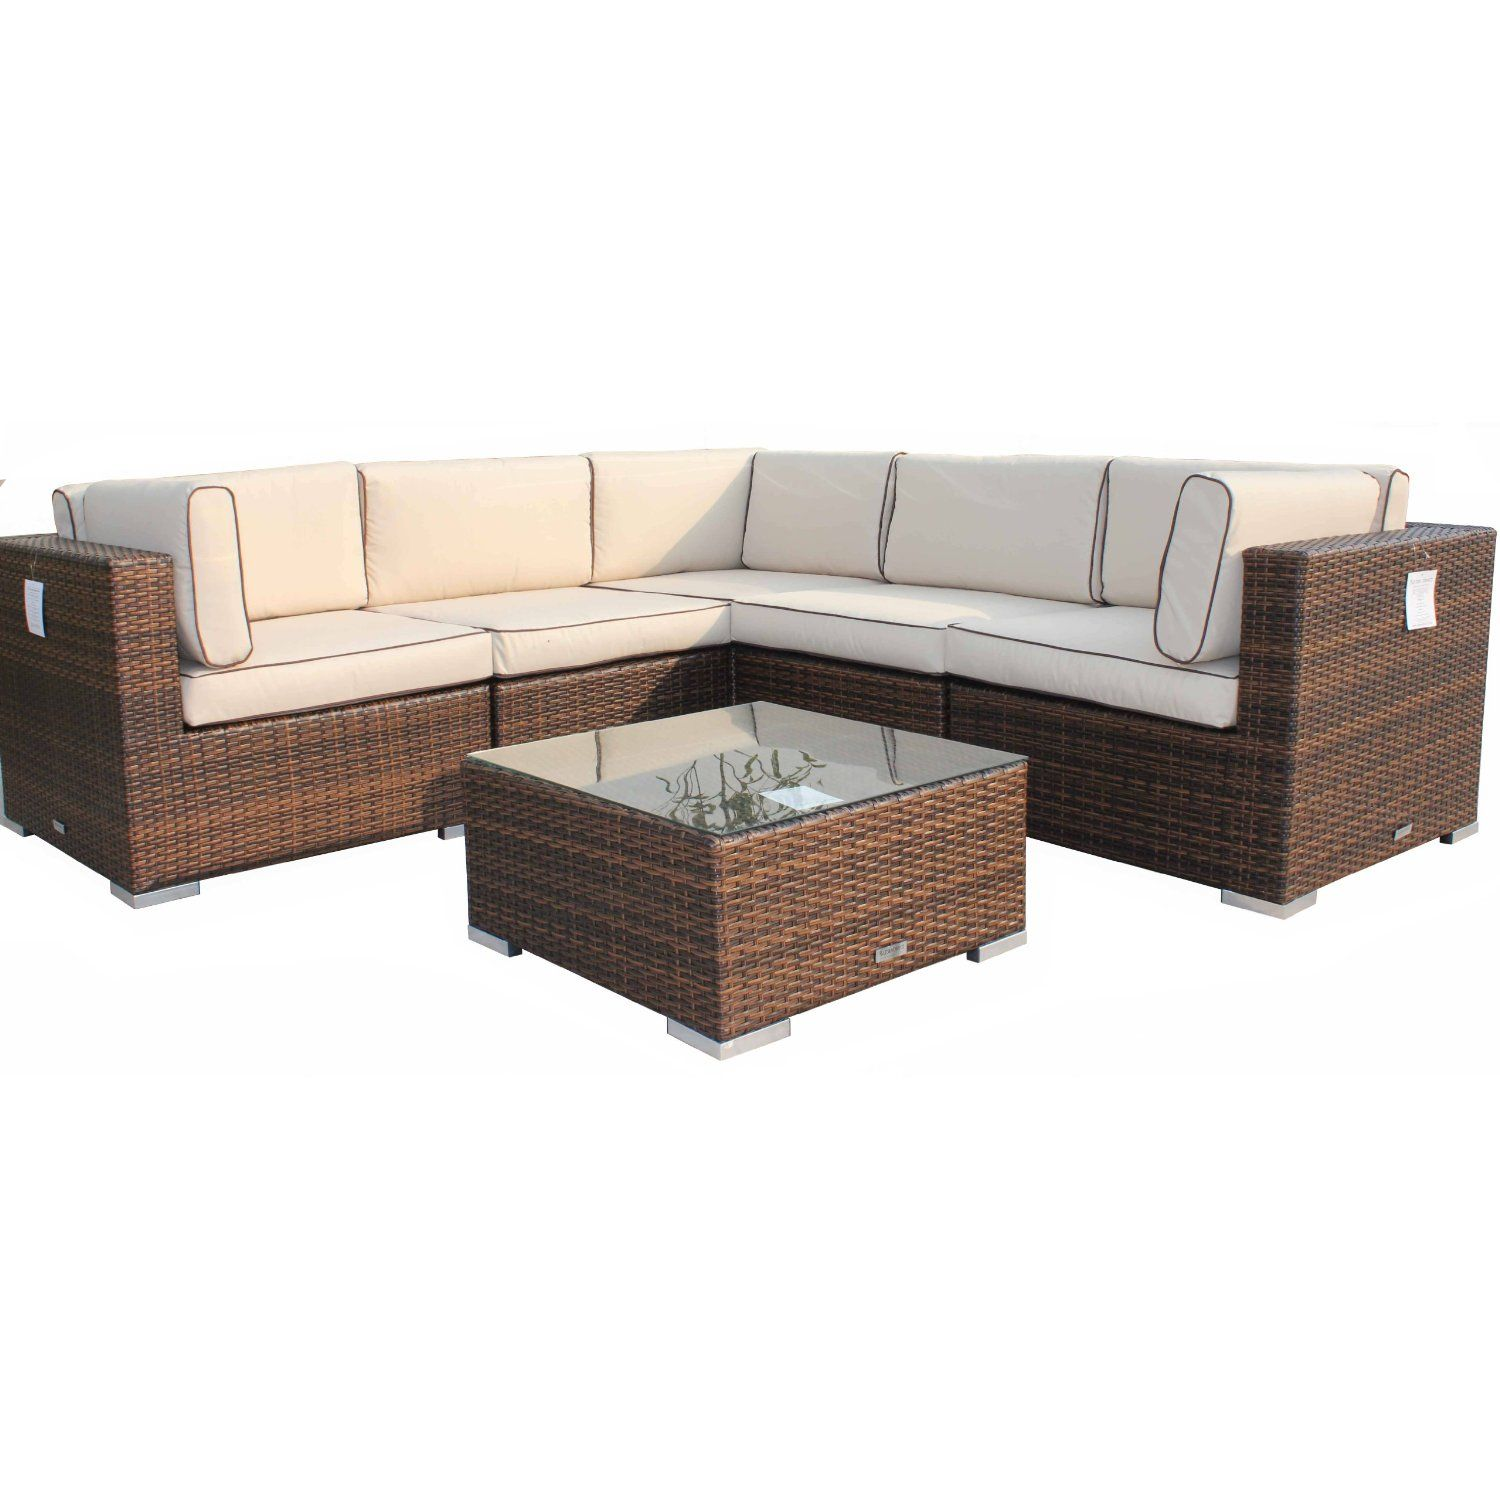 Rattan Garden Furniture AllWeather 6 Piece Florida Corner Suite